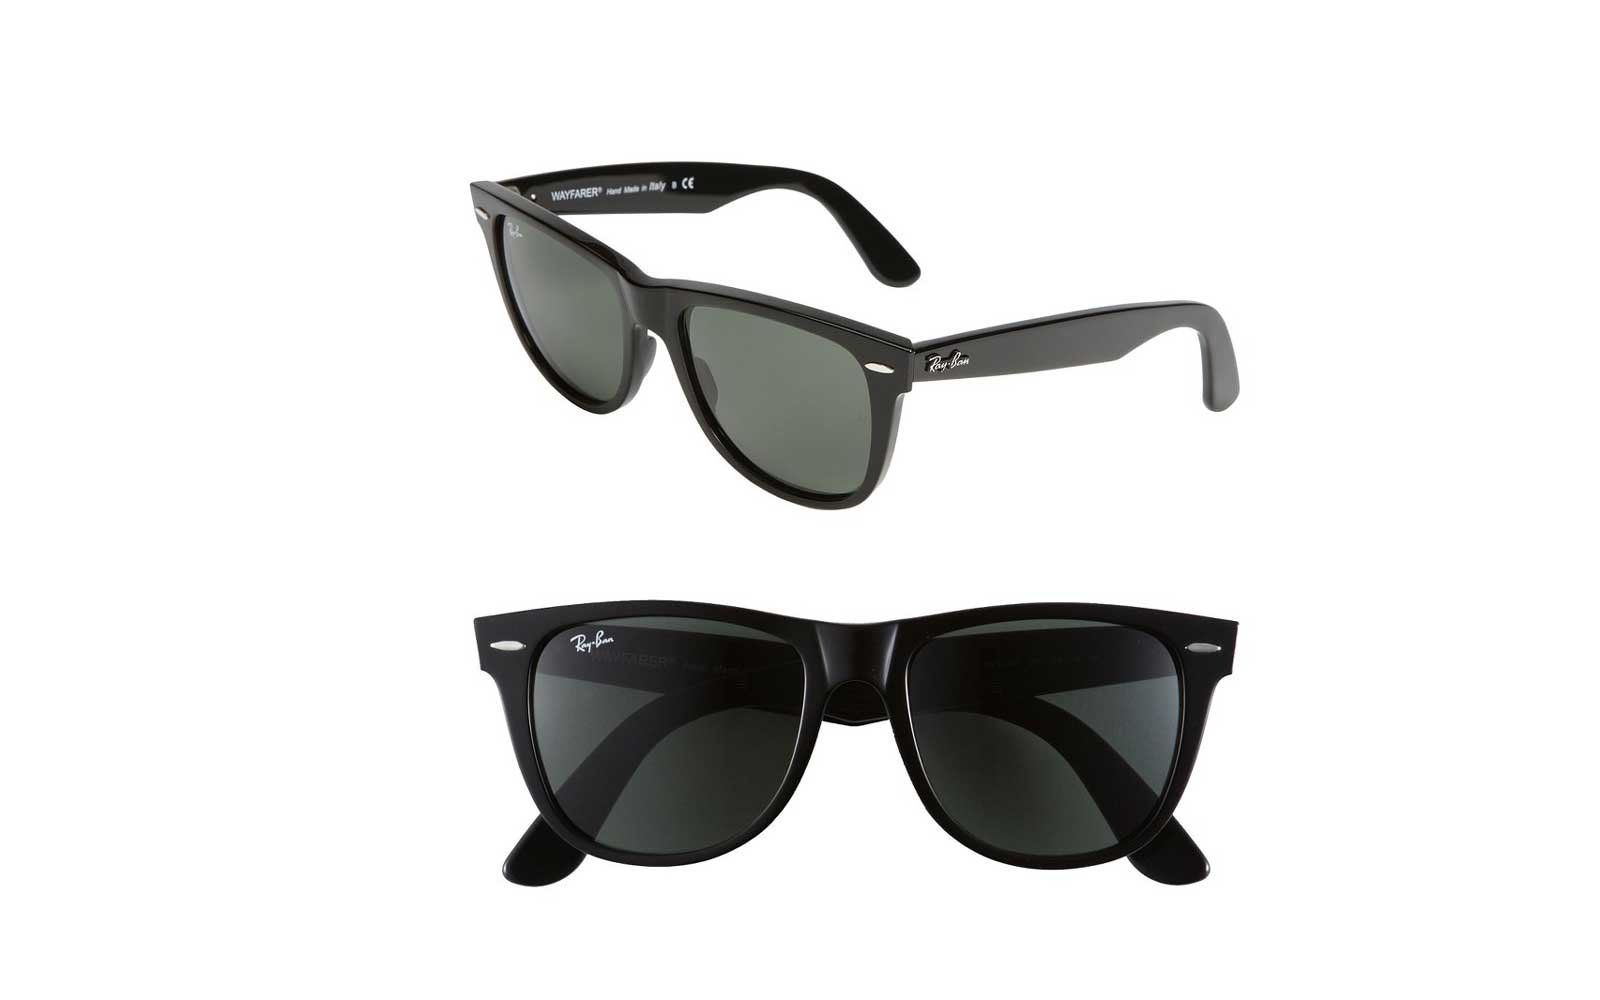 Sunglasses from Ray-Ban